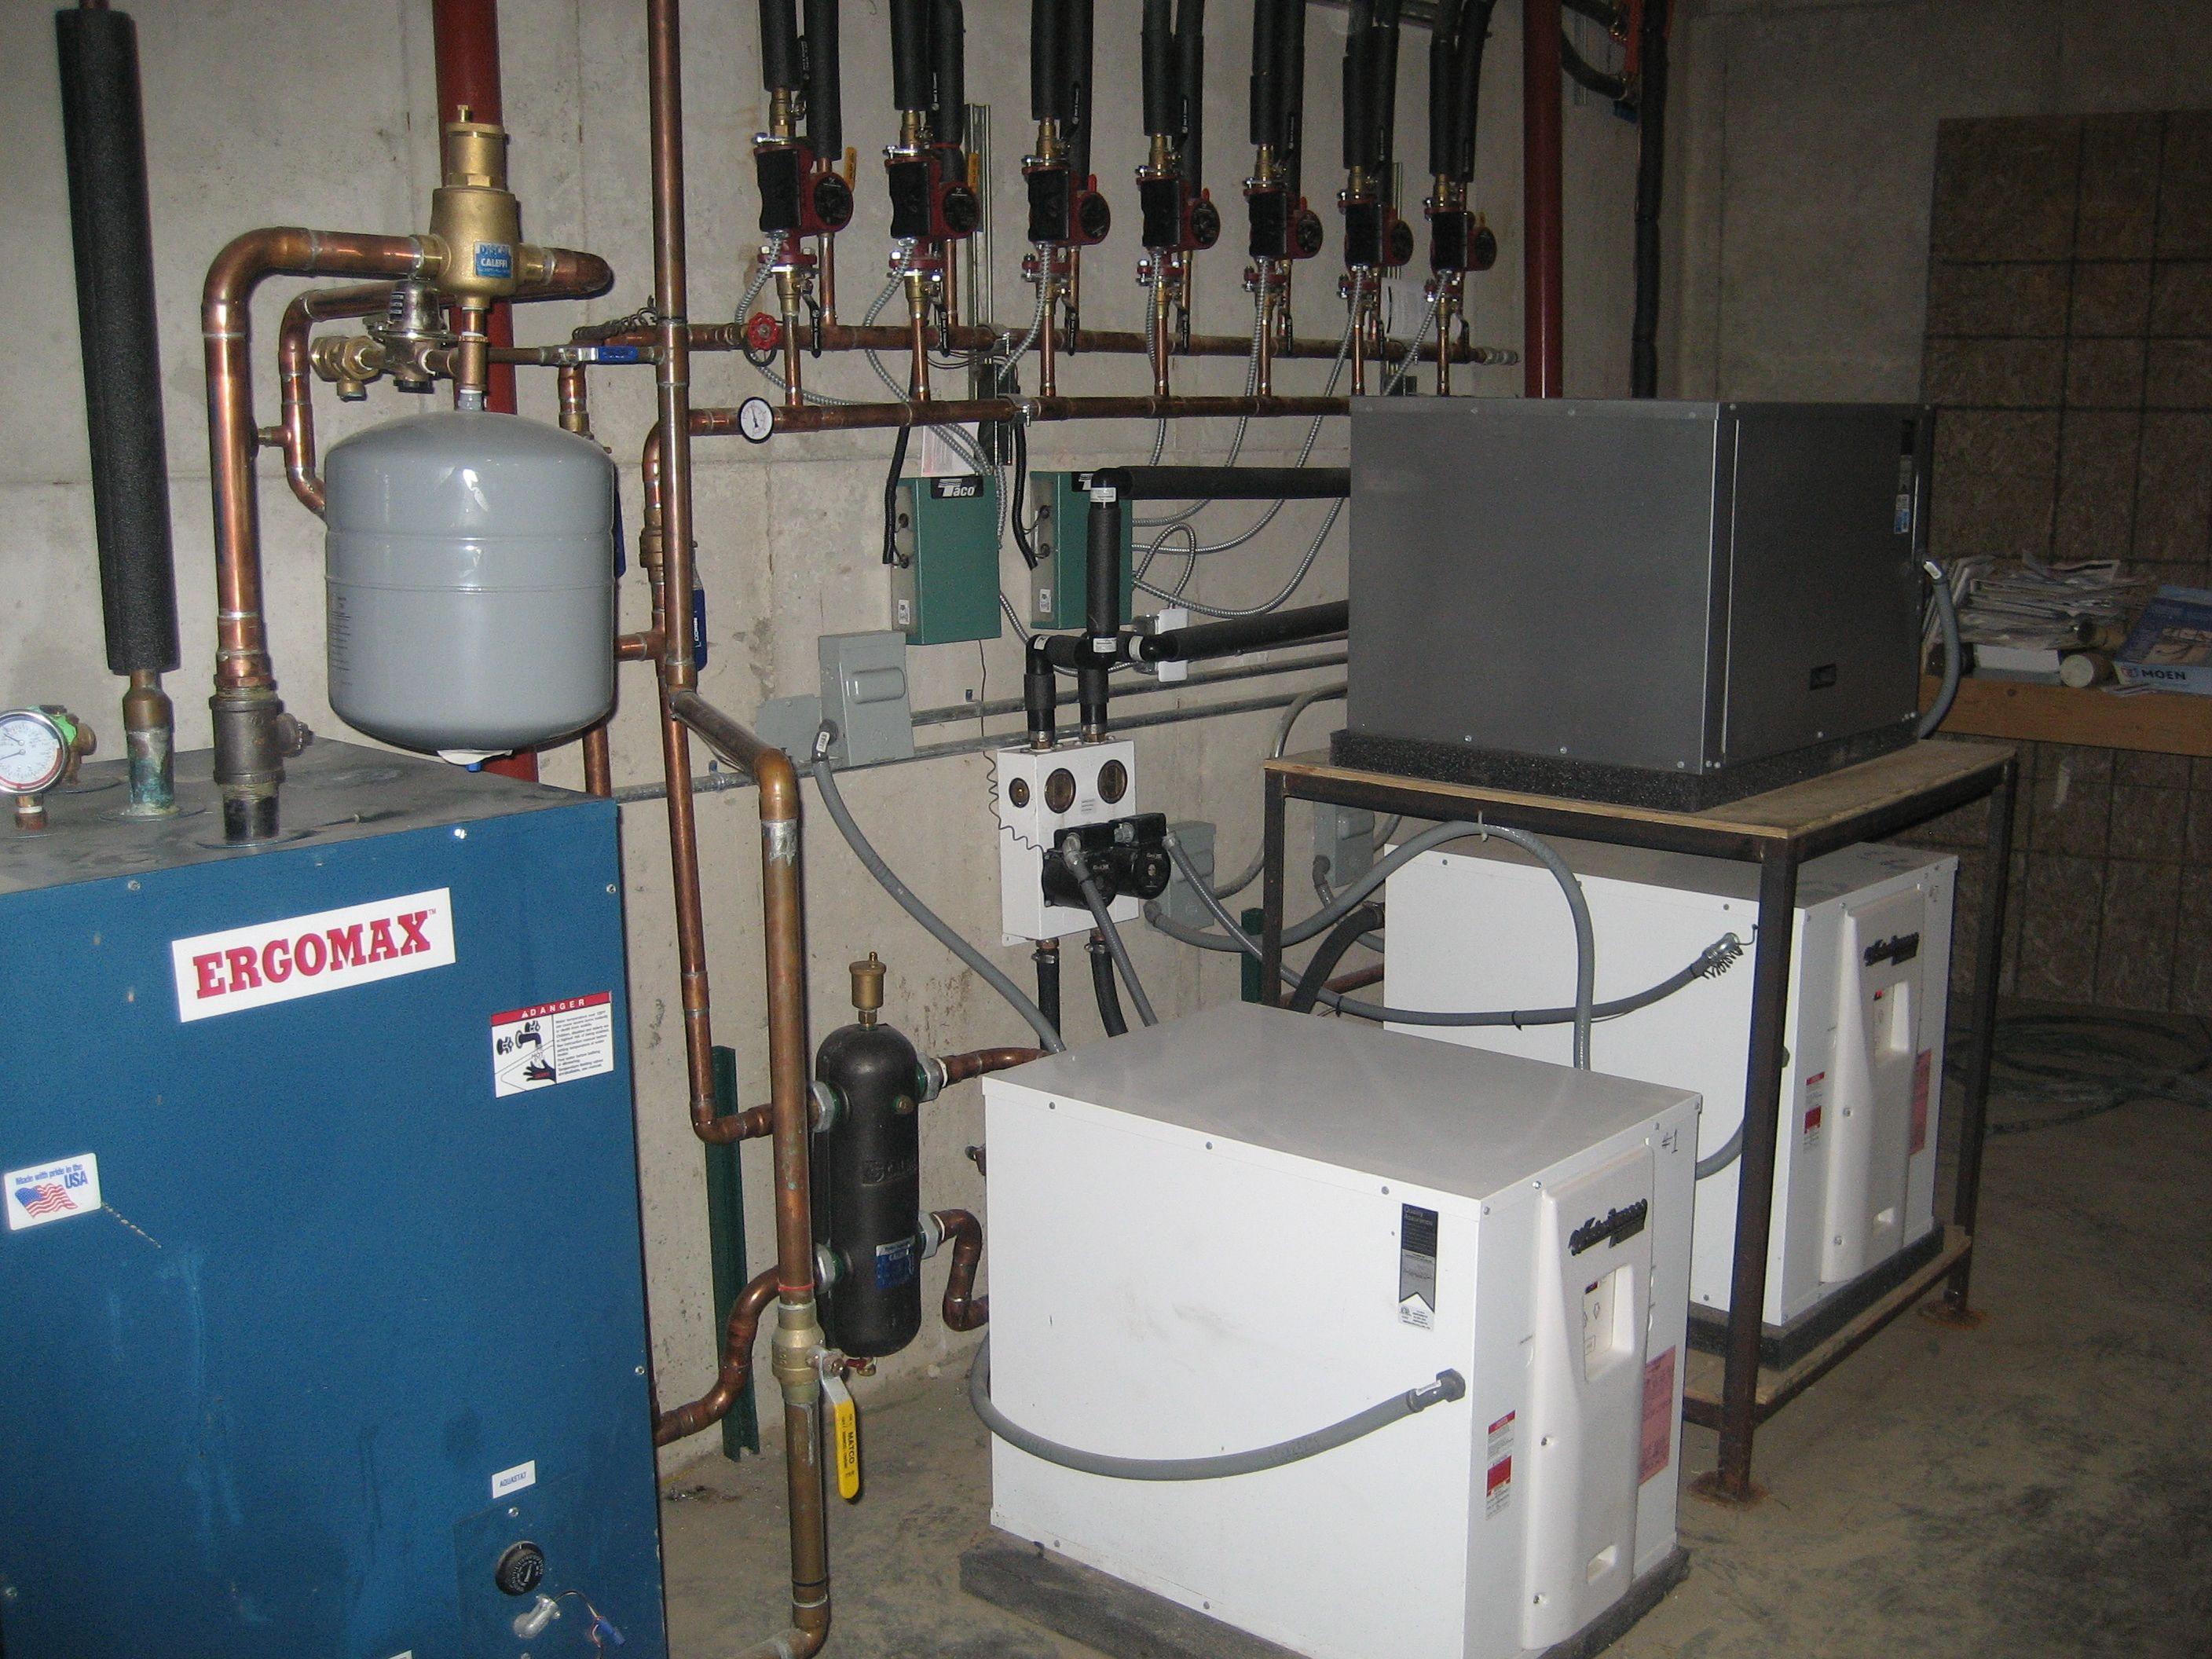 Air Ease Heating And Cooling Geothermalheatpump Geothermal Heat